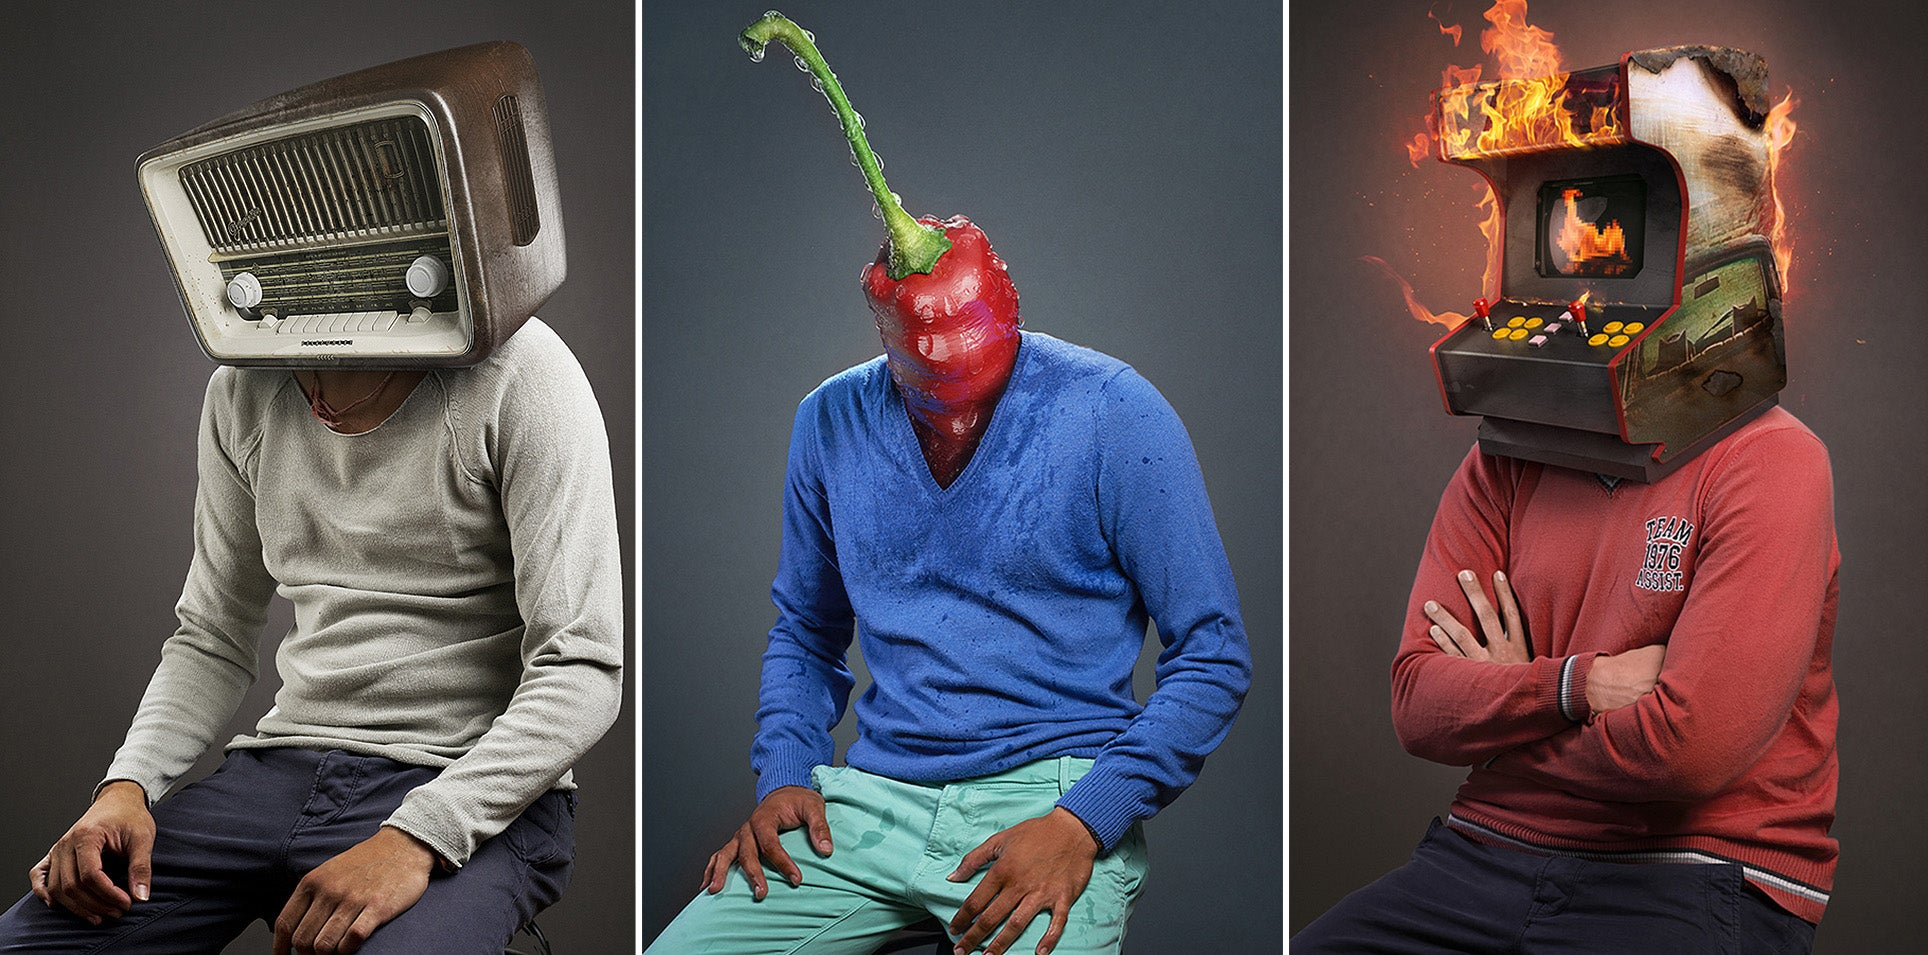 Can you guess the rock bands pictured in these surreal portraits?